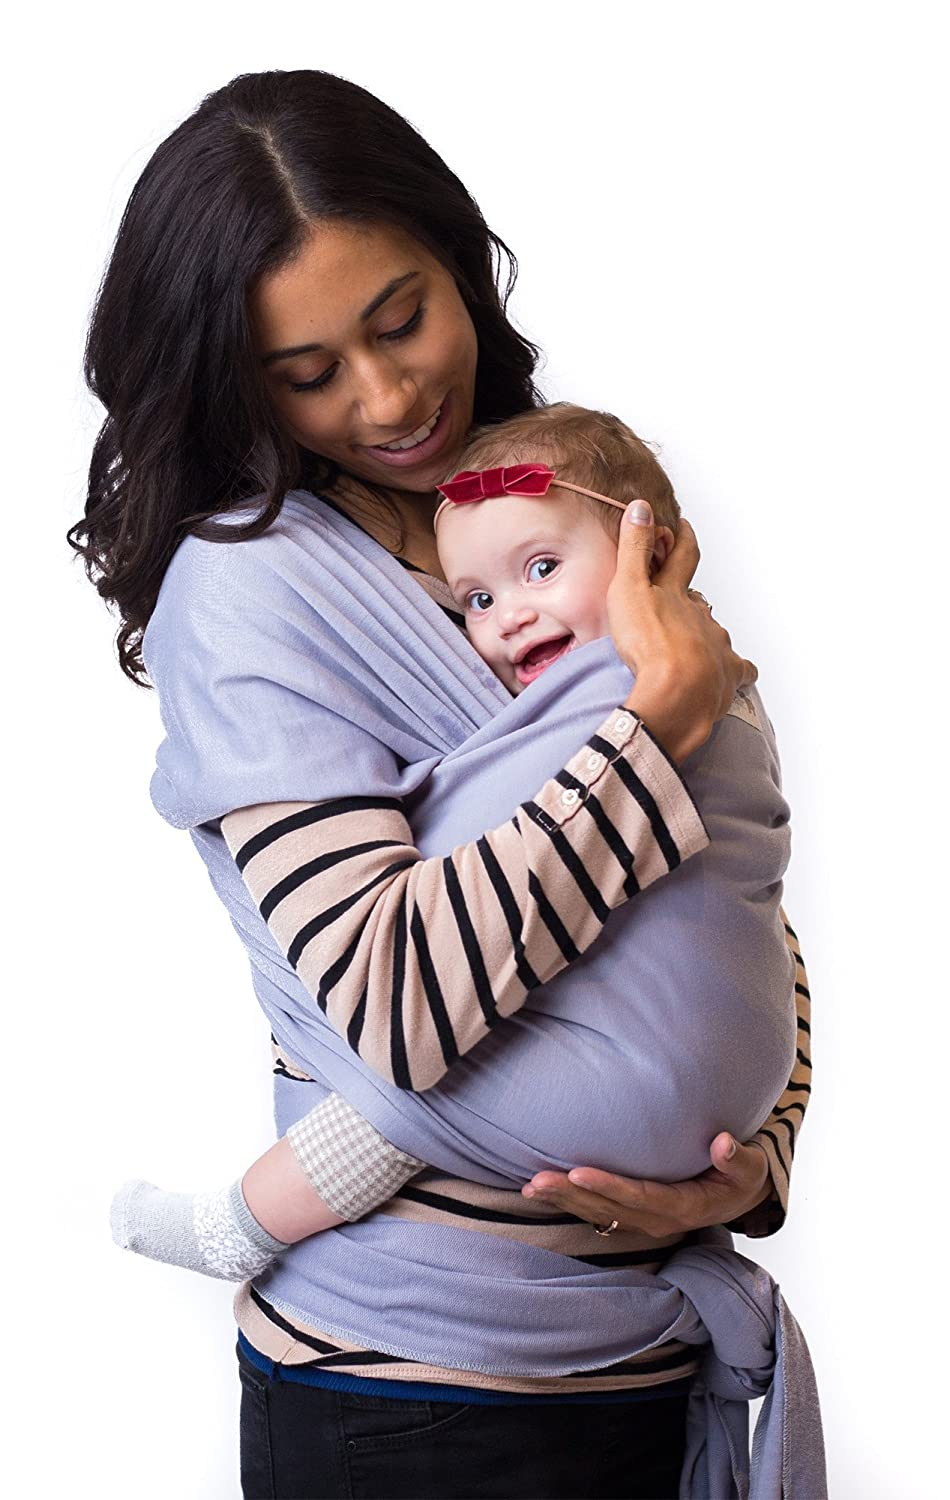 606baeb1a04 Best Baby Carrier Sling Wrap for Moms - Original Grey Cotton Quality  Material - Comfortable